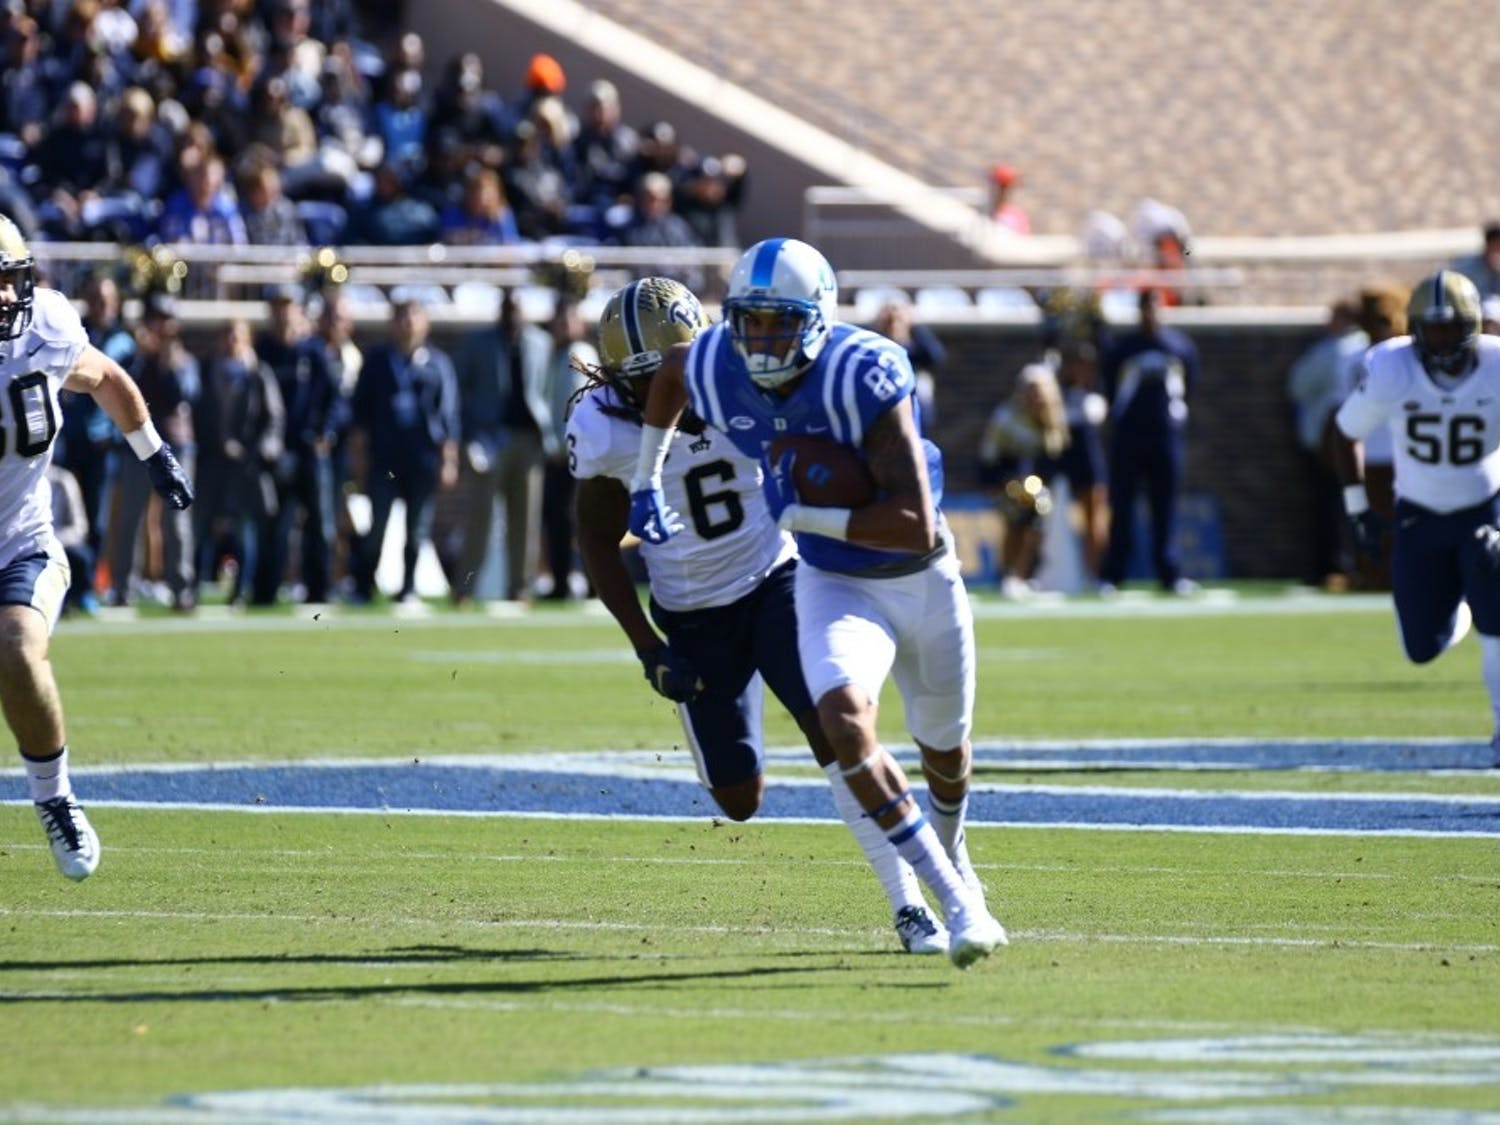 After a breakout season in 2015, redshirt senior Anthony Nash could be a reliable contributor on a young Duke receiving corps this year.